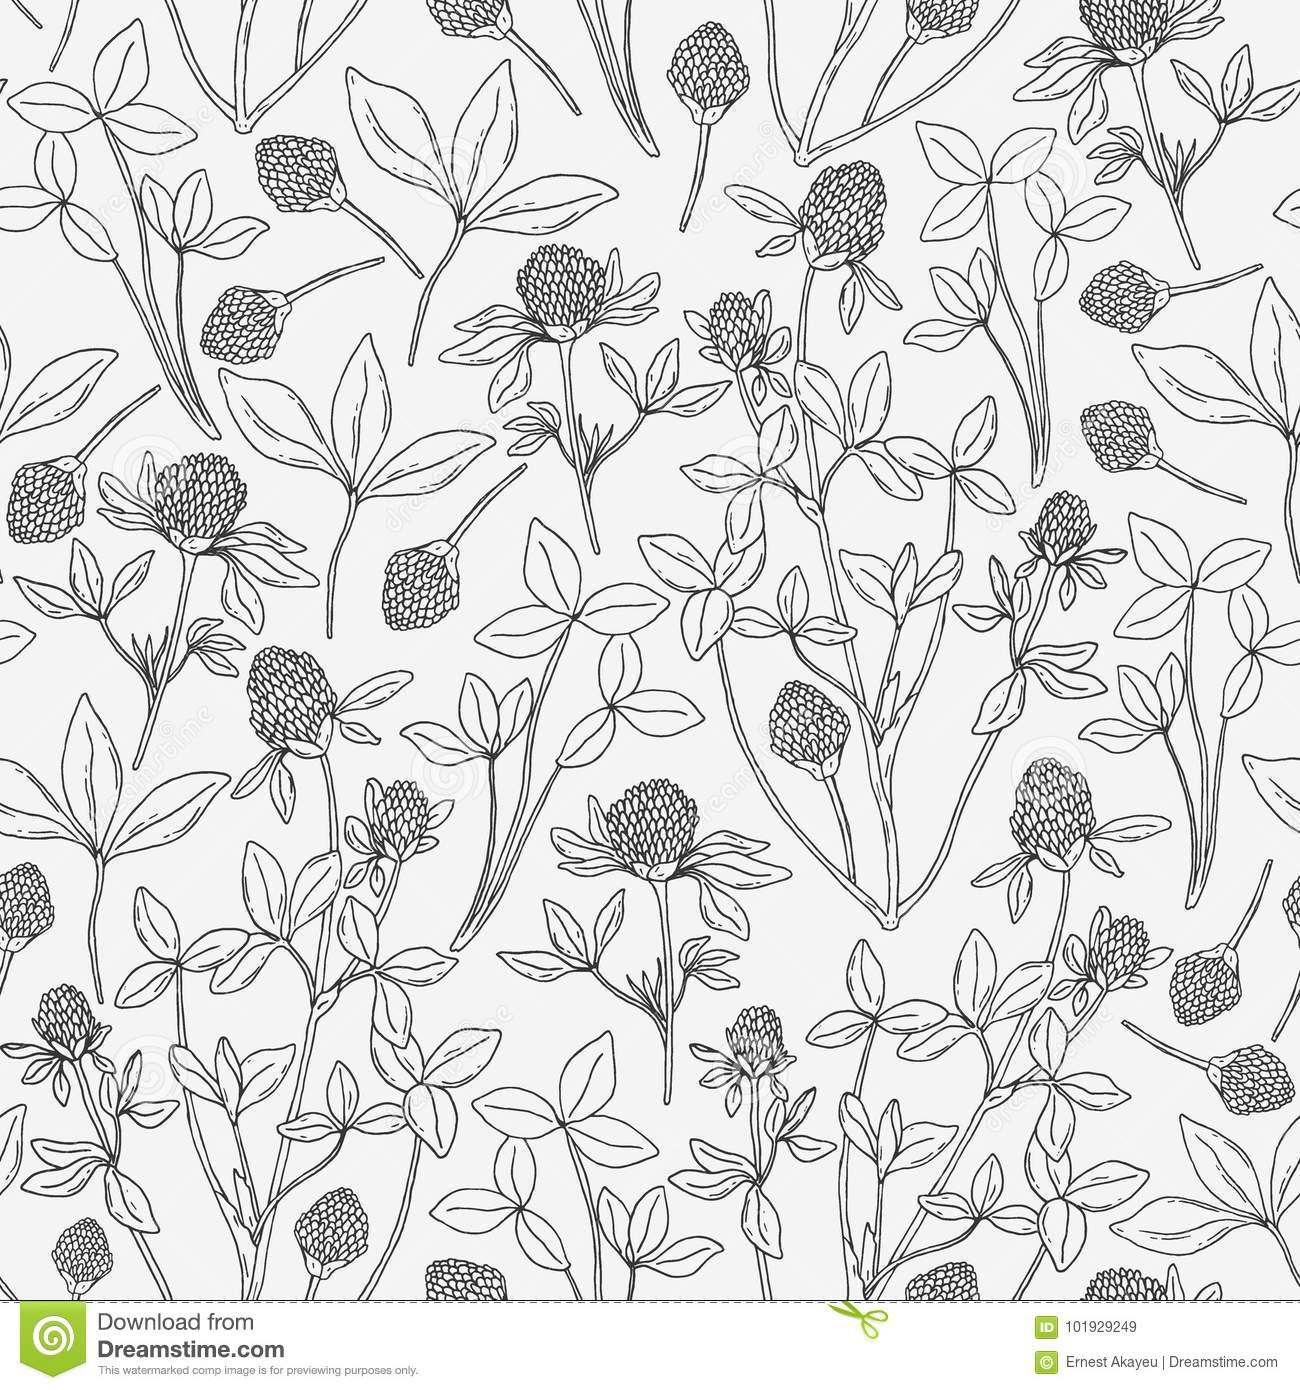 Botanical Seamless Pattern With Clover On White Background